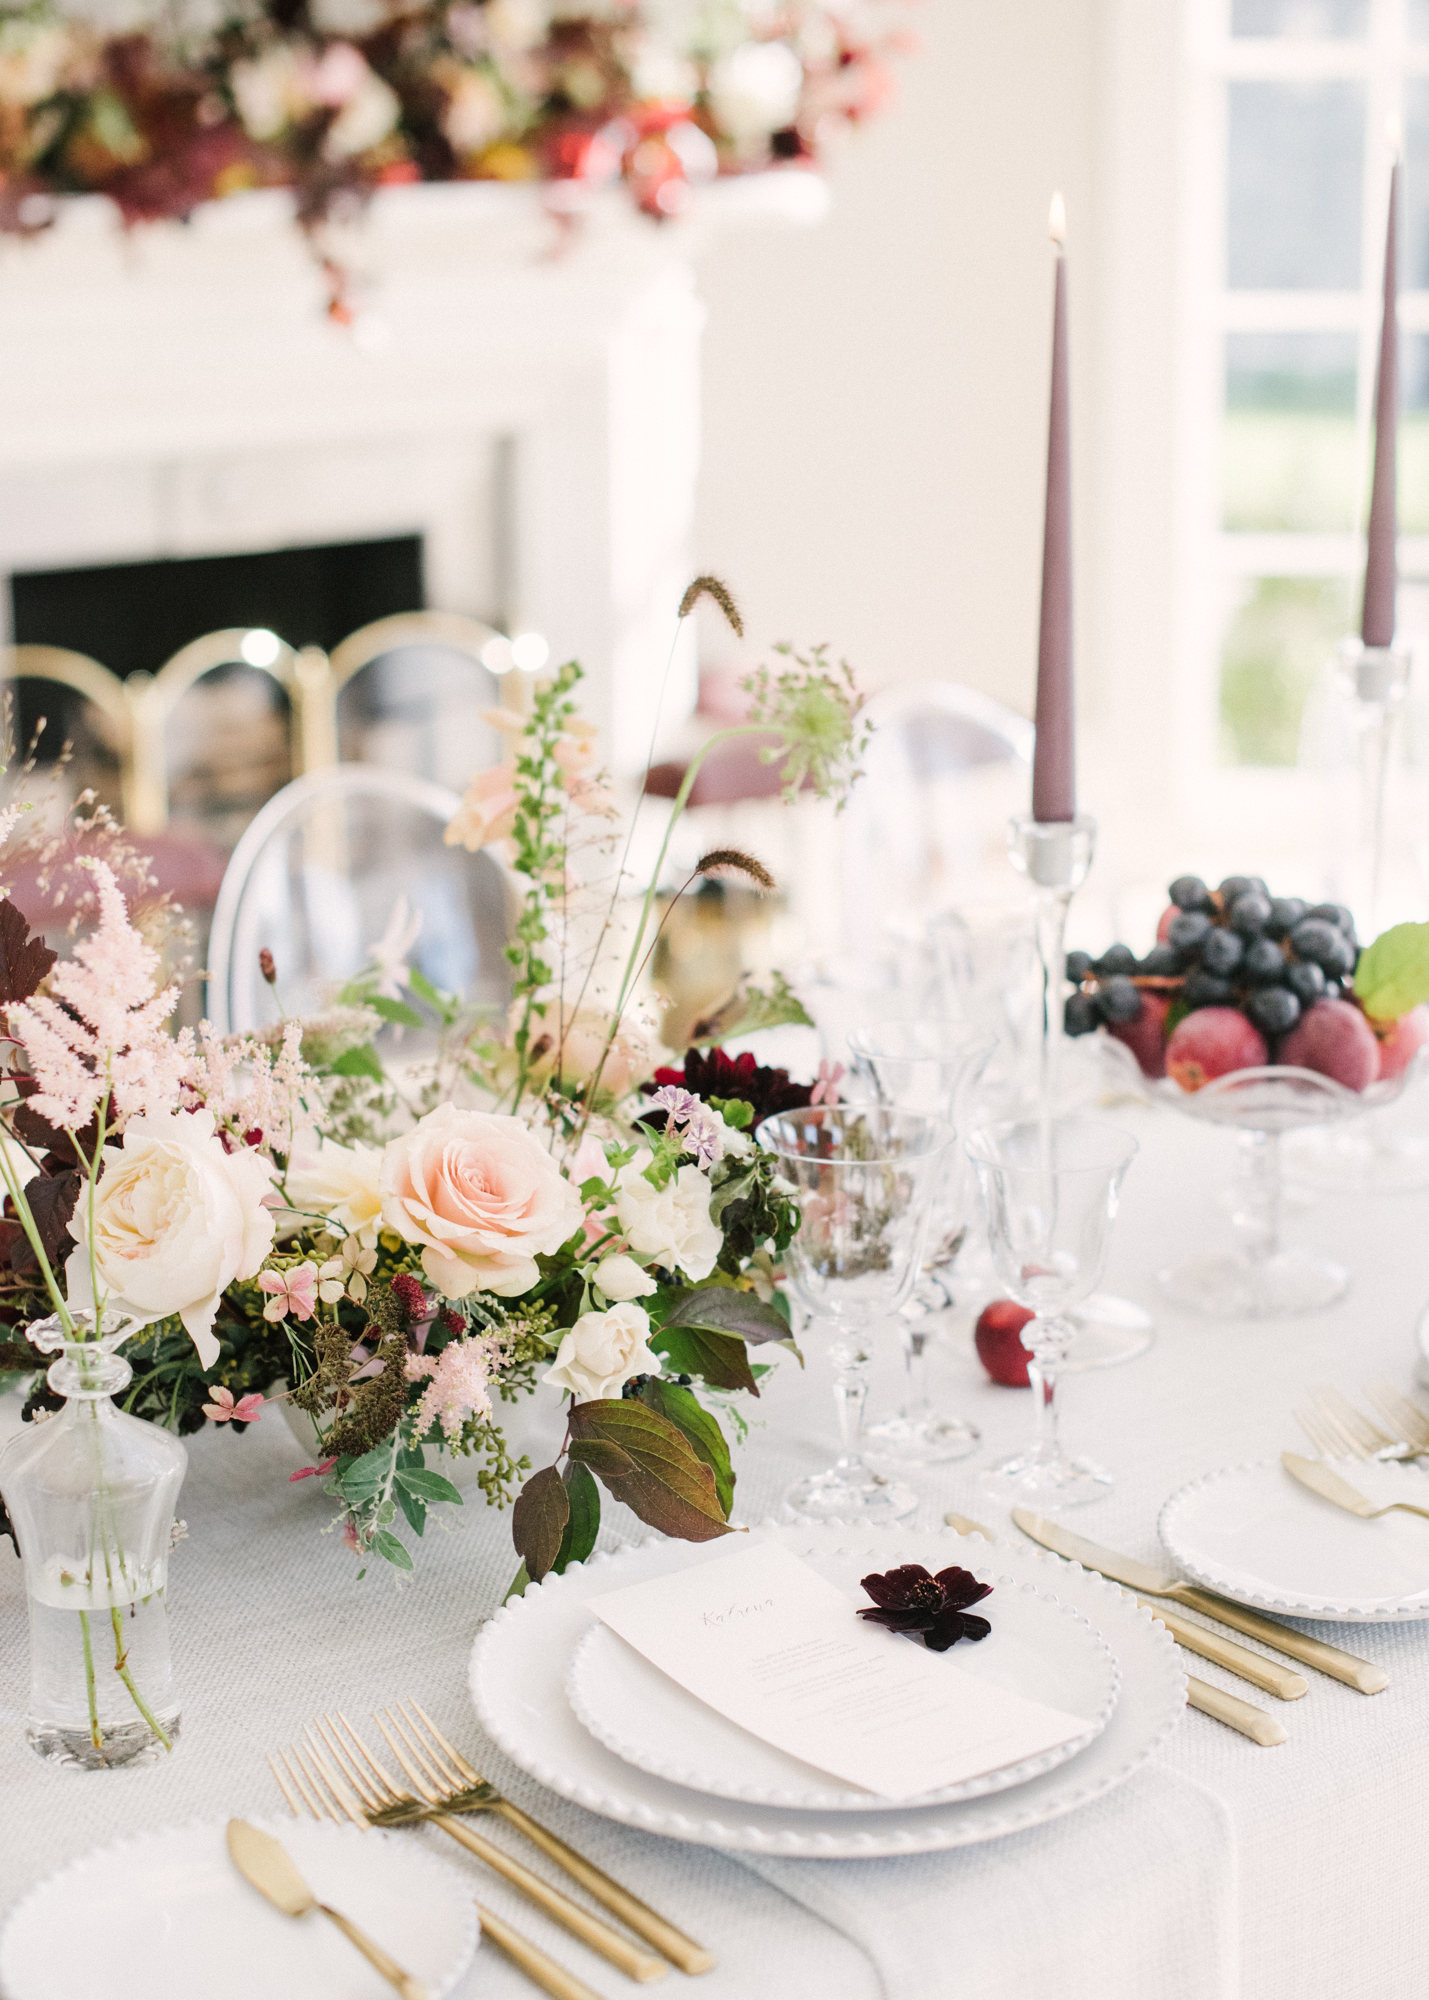 Wedding table place setting at English countryside venue Holywell Hall